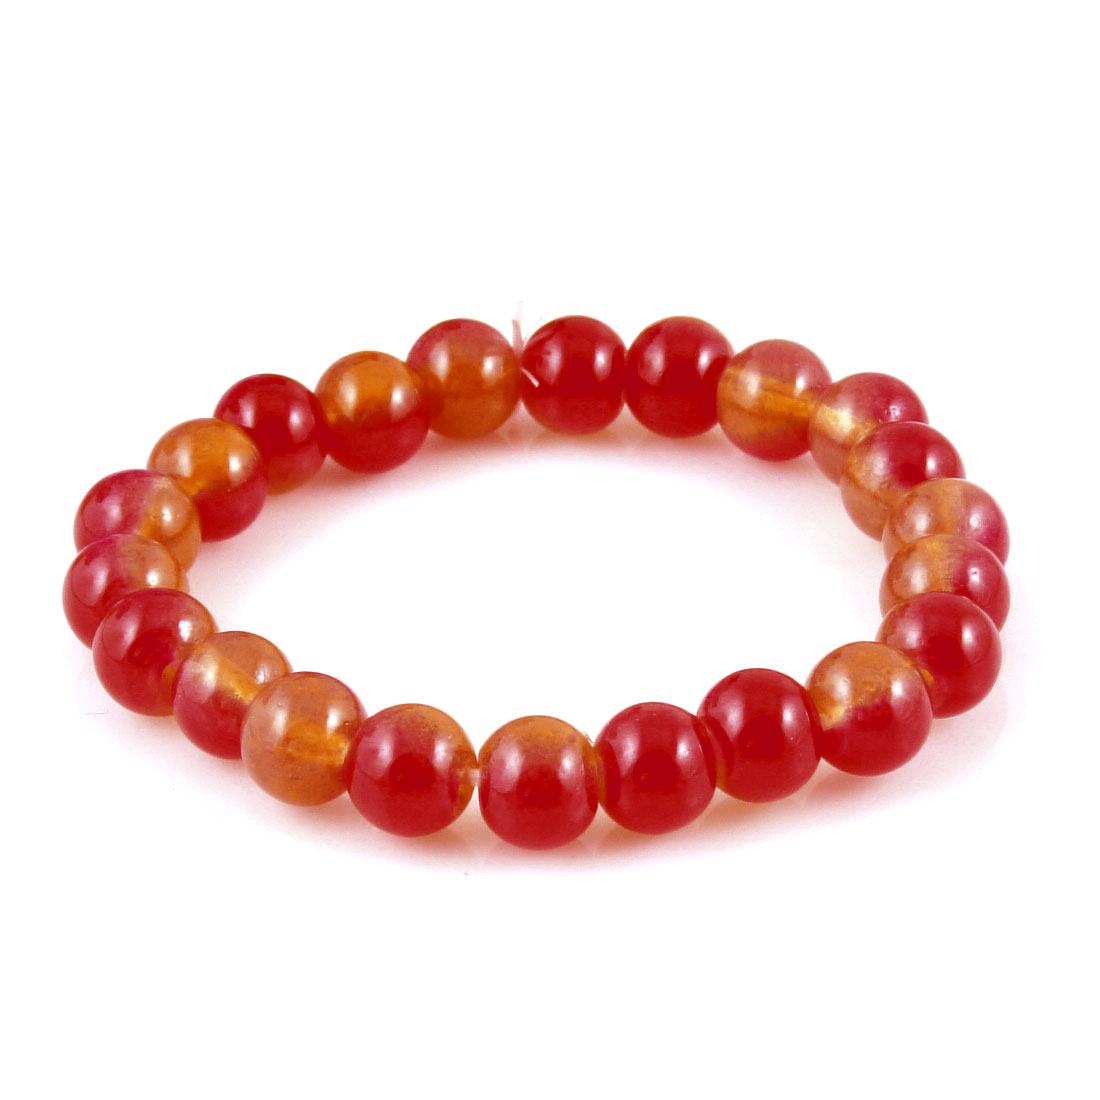 Orange Red Glass 22 Beads Elastic Bracelet Bangle for Women